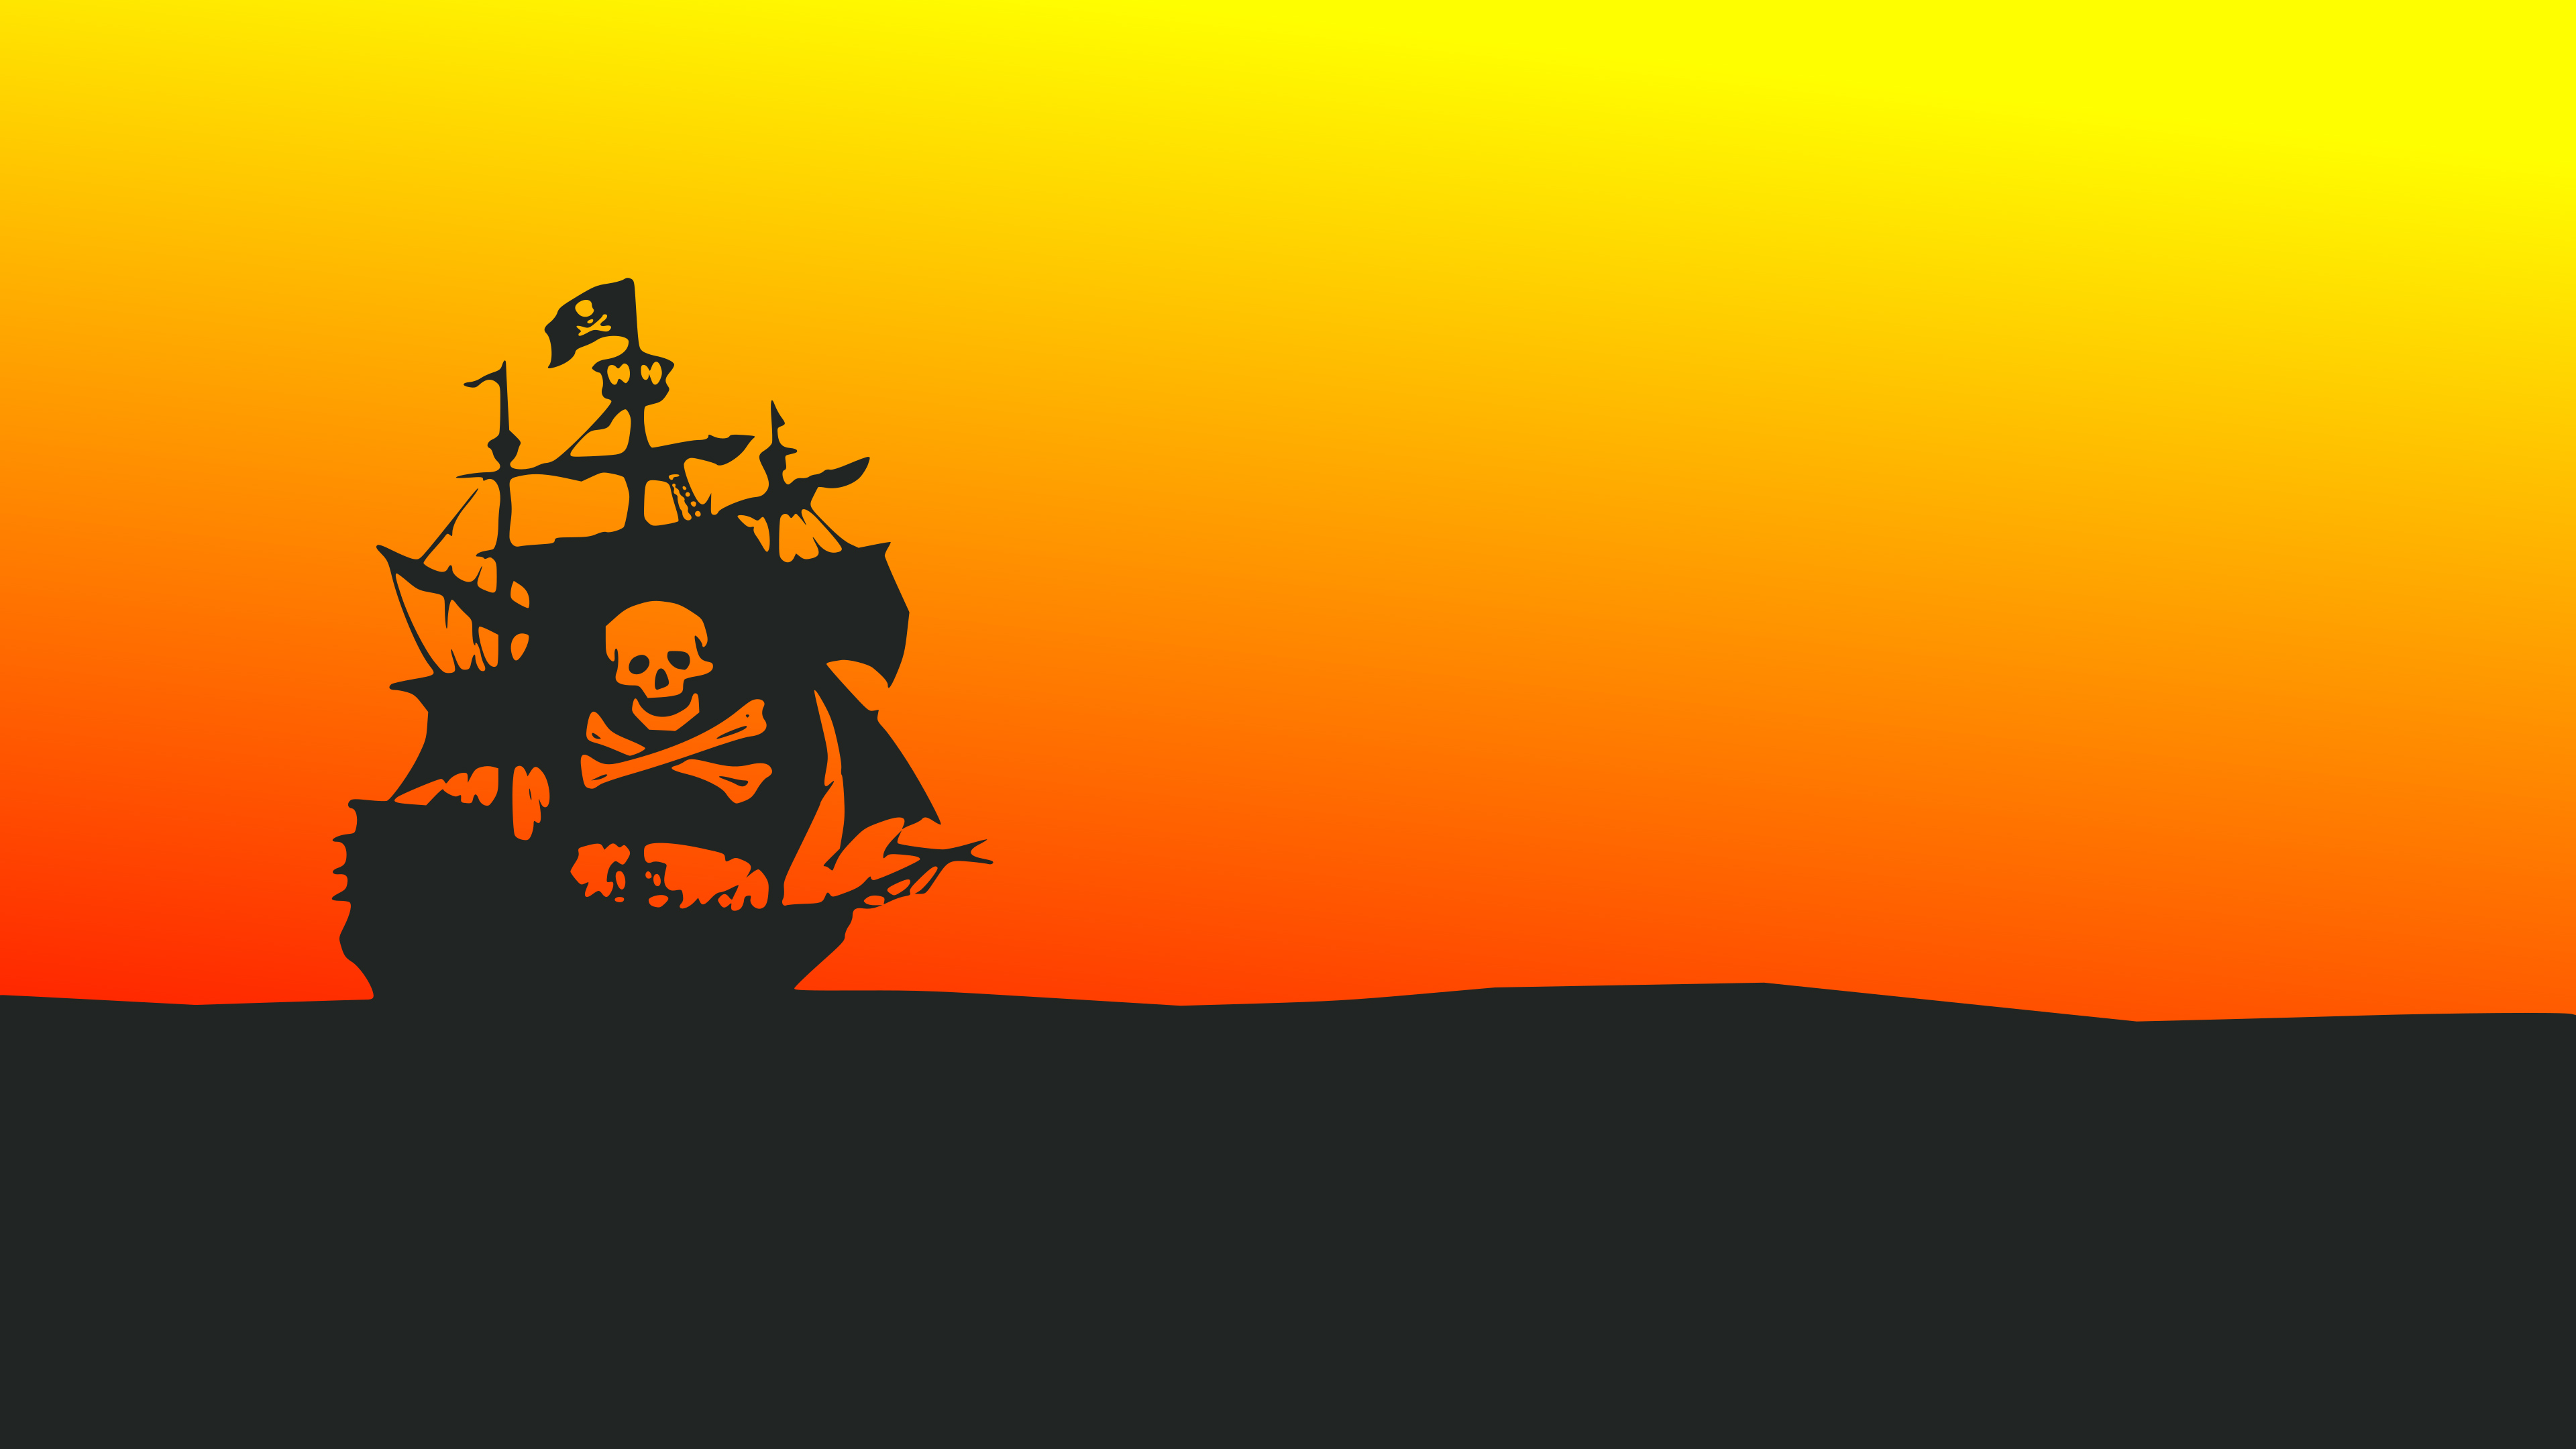 2560x1080 Pirate Ship Minimalist 4k 2560x1080 Resolution Hd 4k Wallpapers Images Backgrounds Photos And Pictures